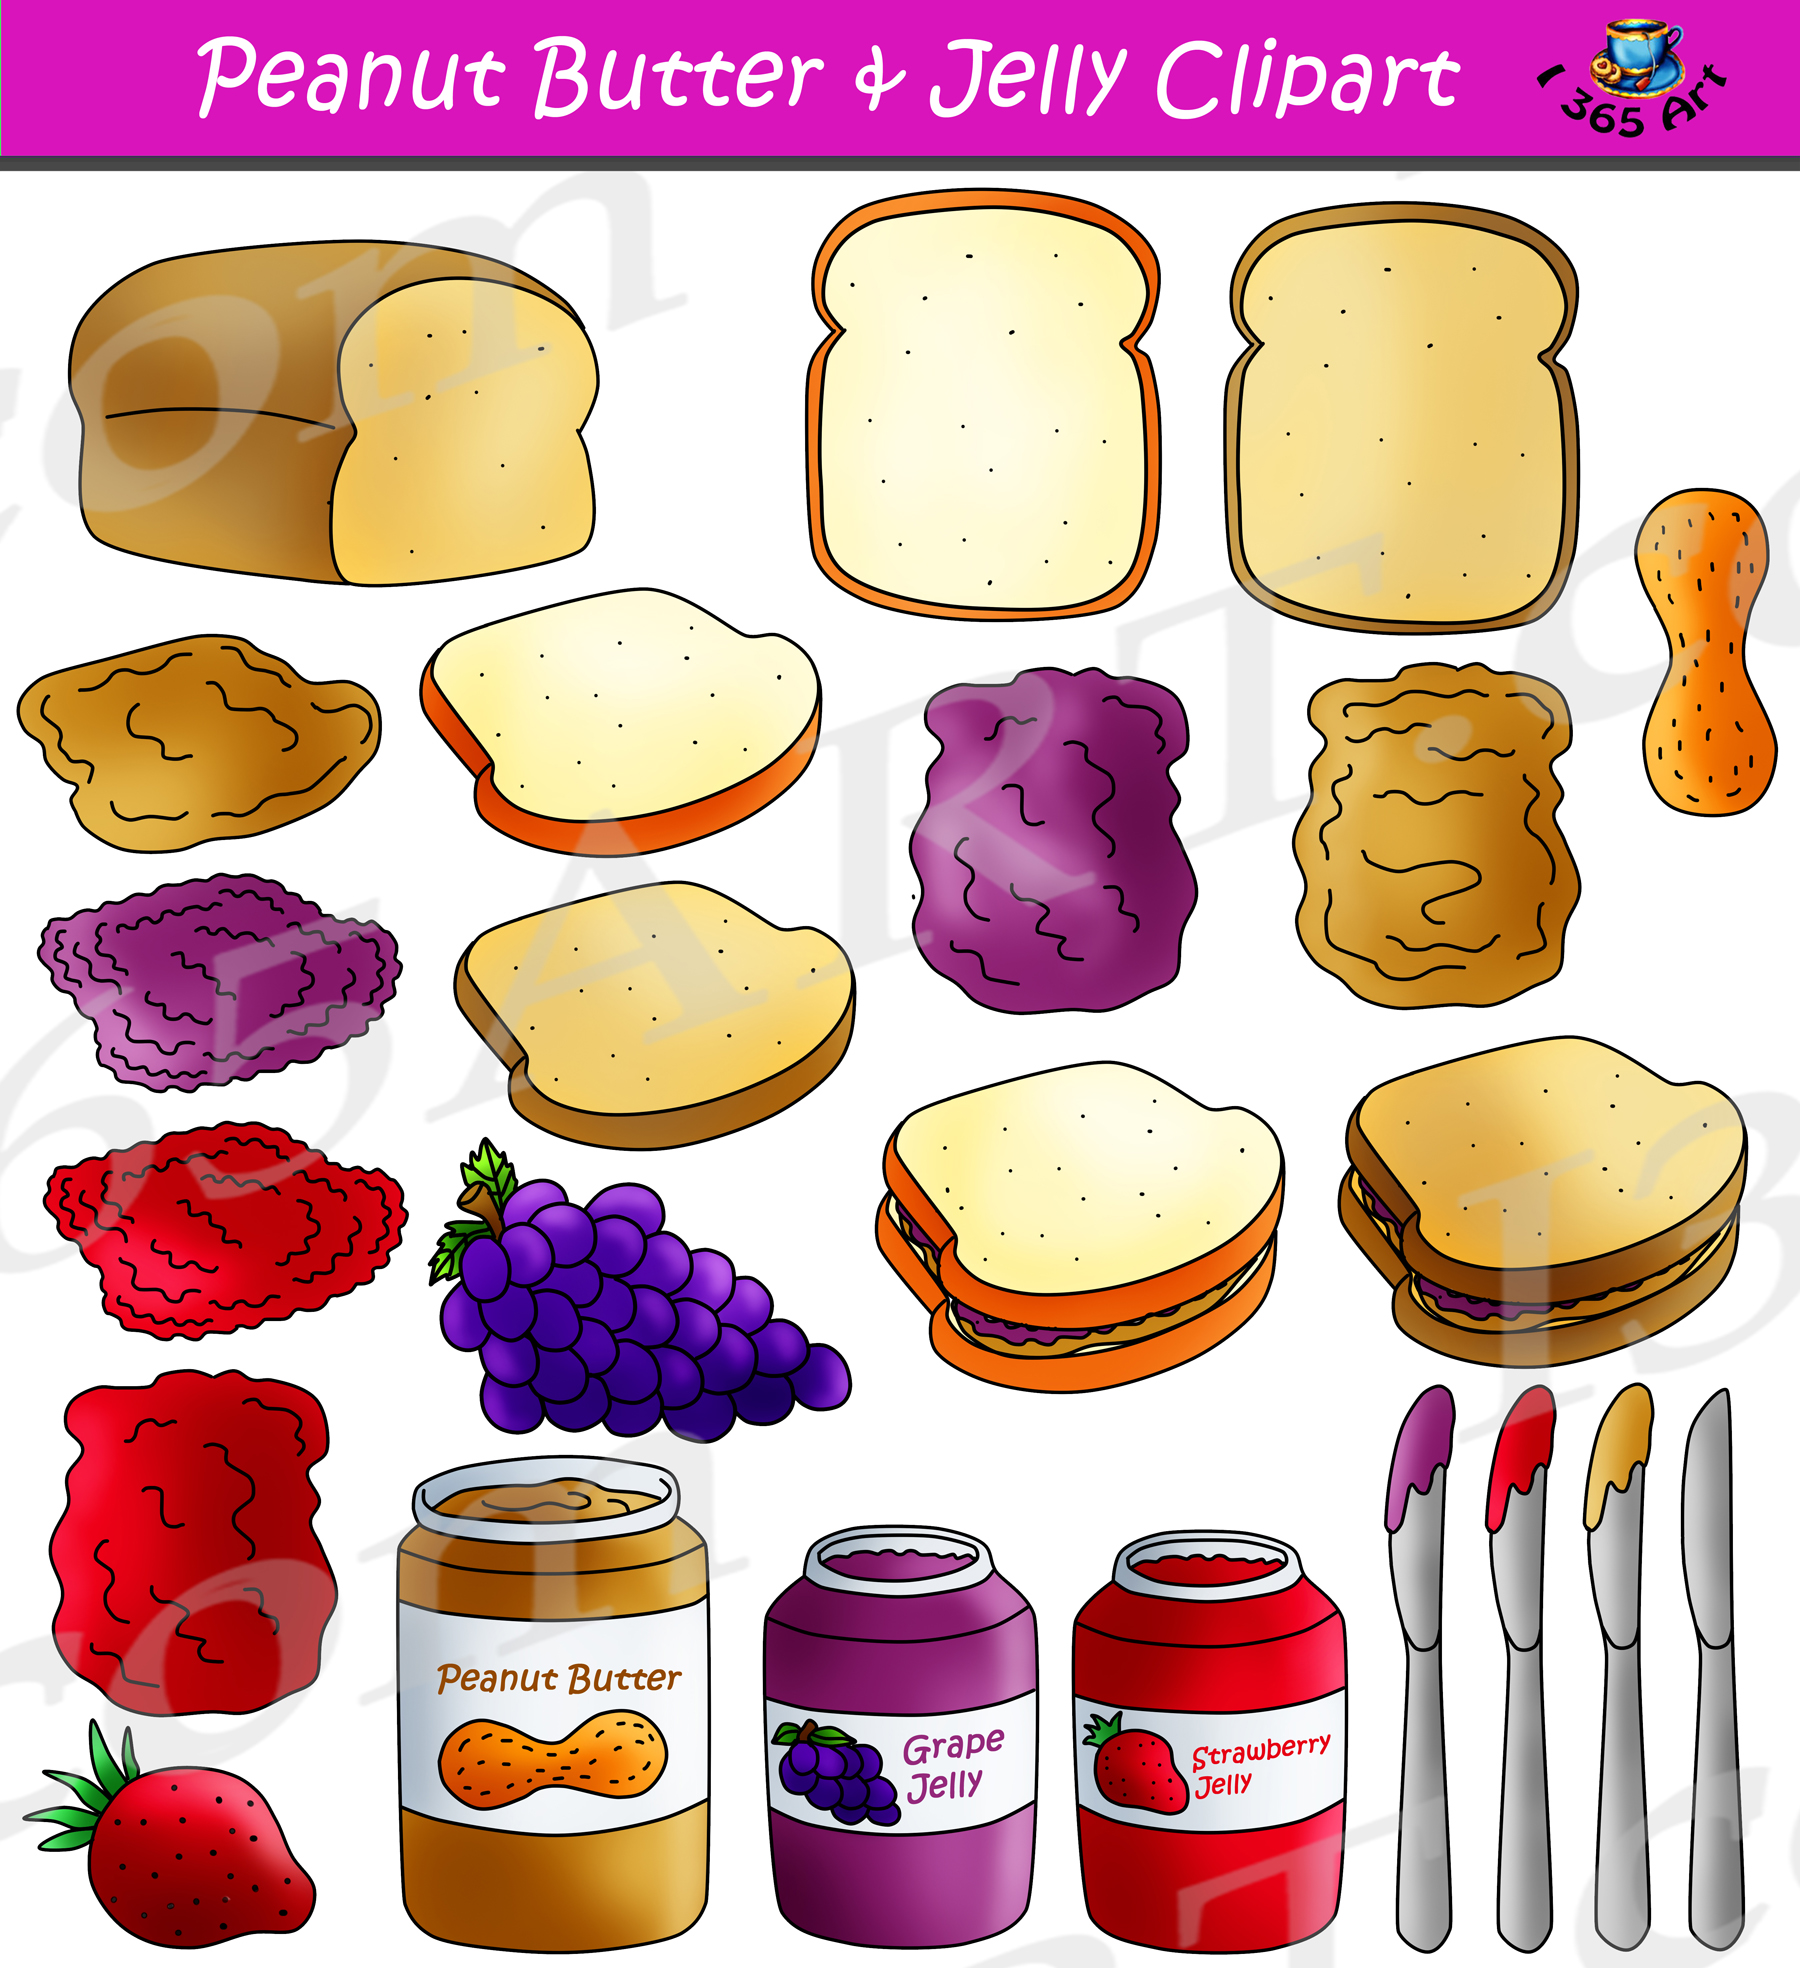 Peanut butter jelly sandwich clipart vector transparent stock Peanut Butter Jelly Clipart Maker Graphics Commercial Download vector transparent stock